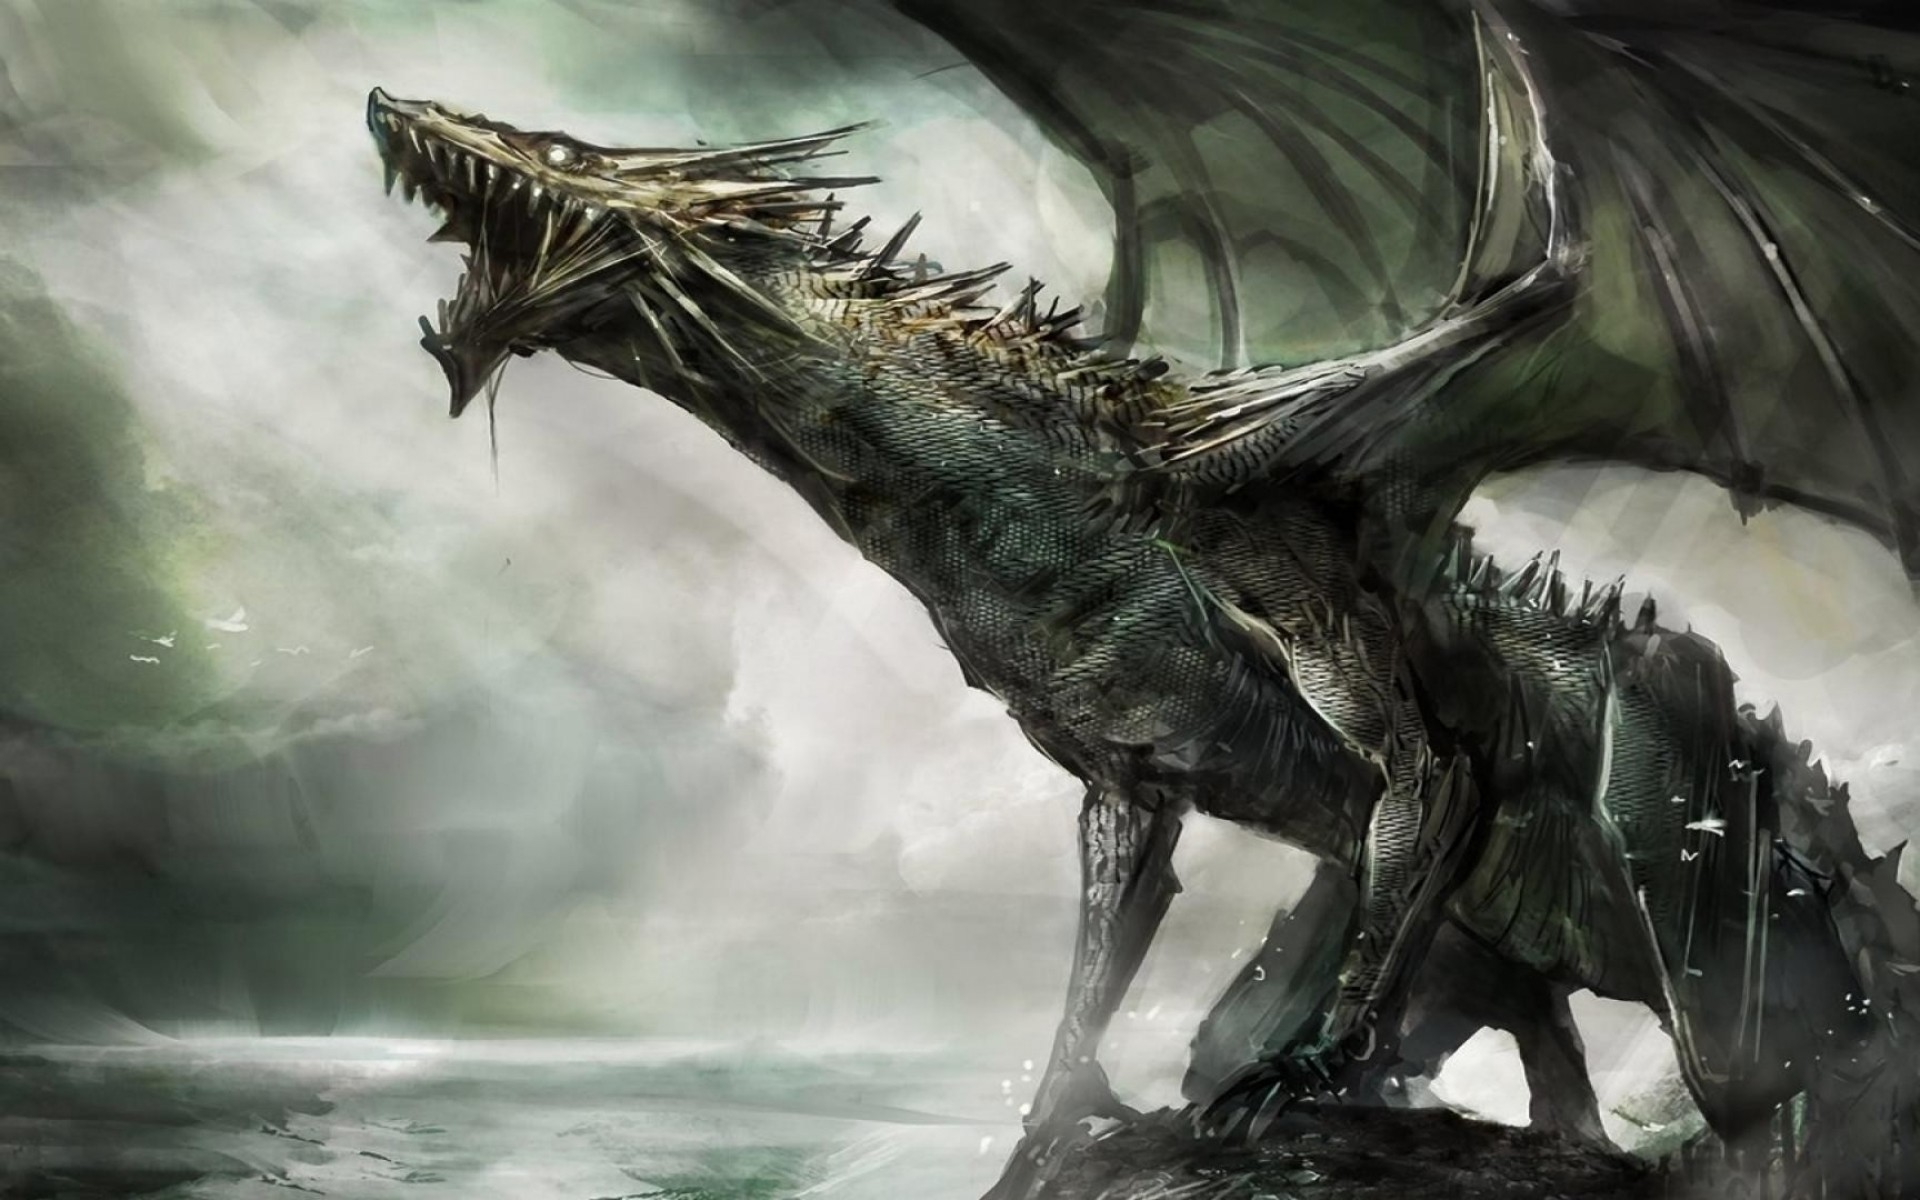 Scary Dragon Spines Wallpaper